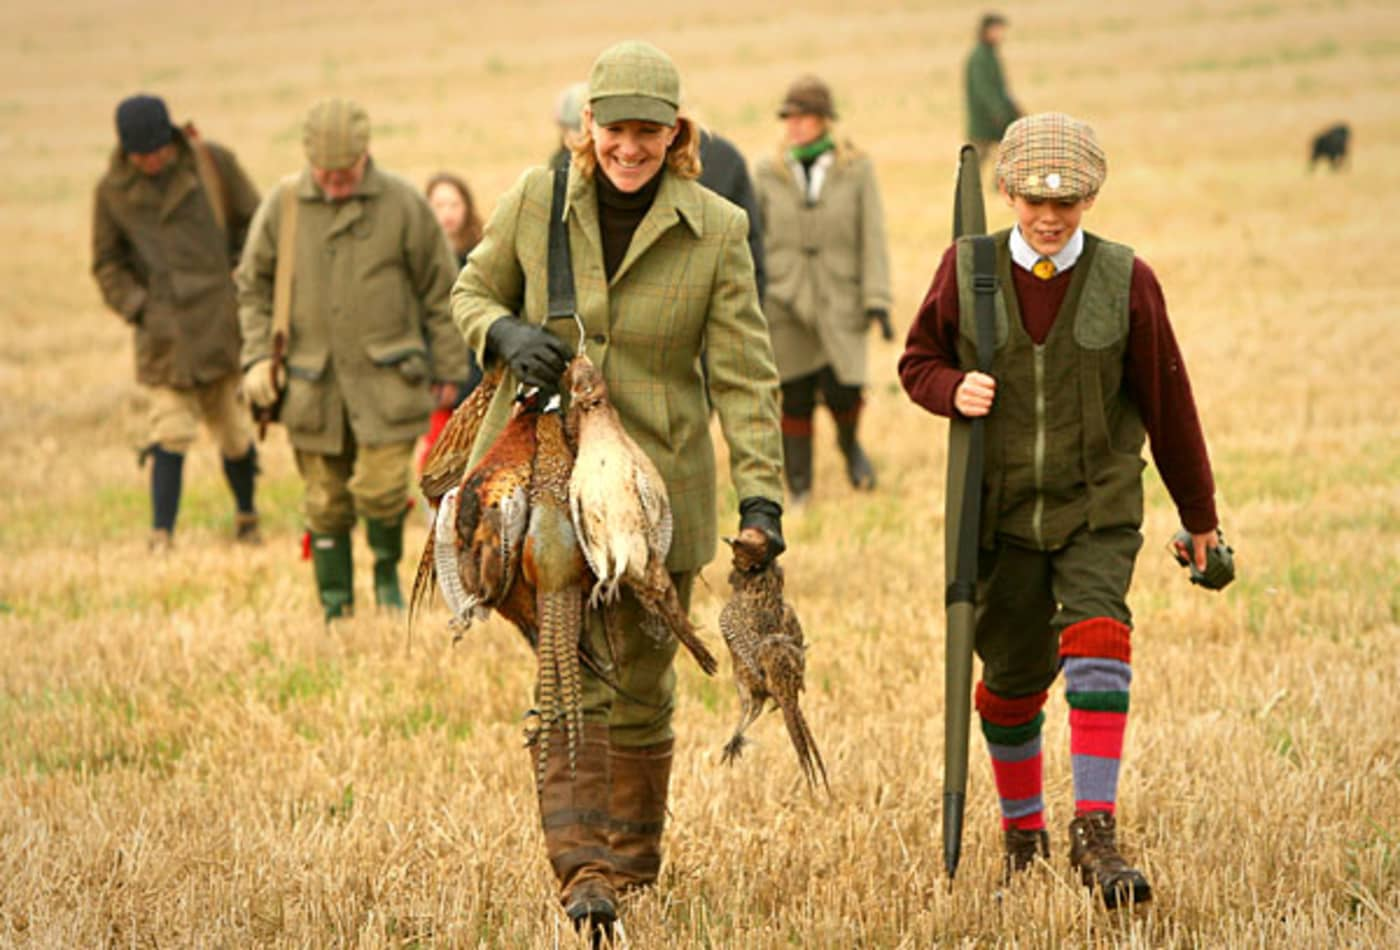 48816427 Pheasant-Shooting-Sports-for-the-One-Percent-CNBC.jpg